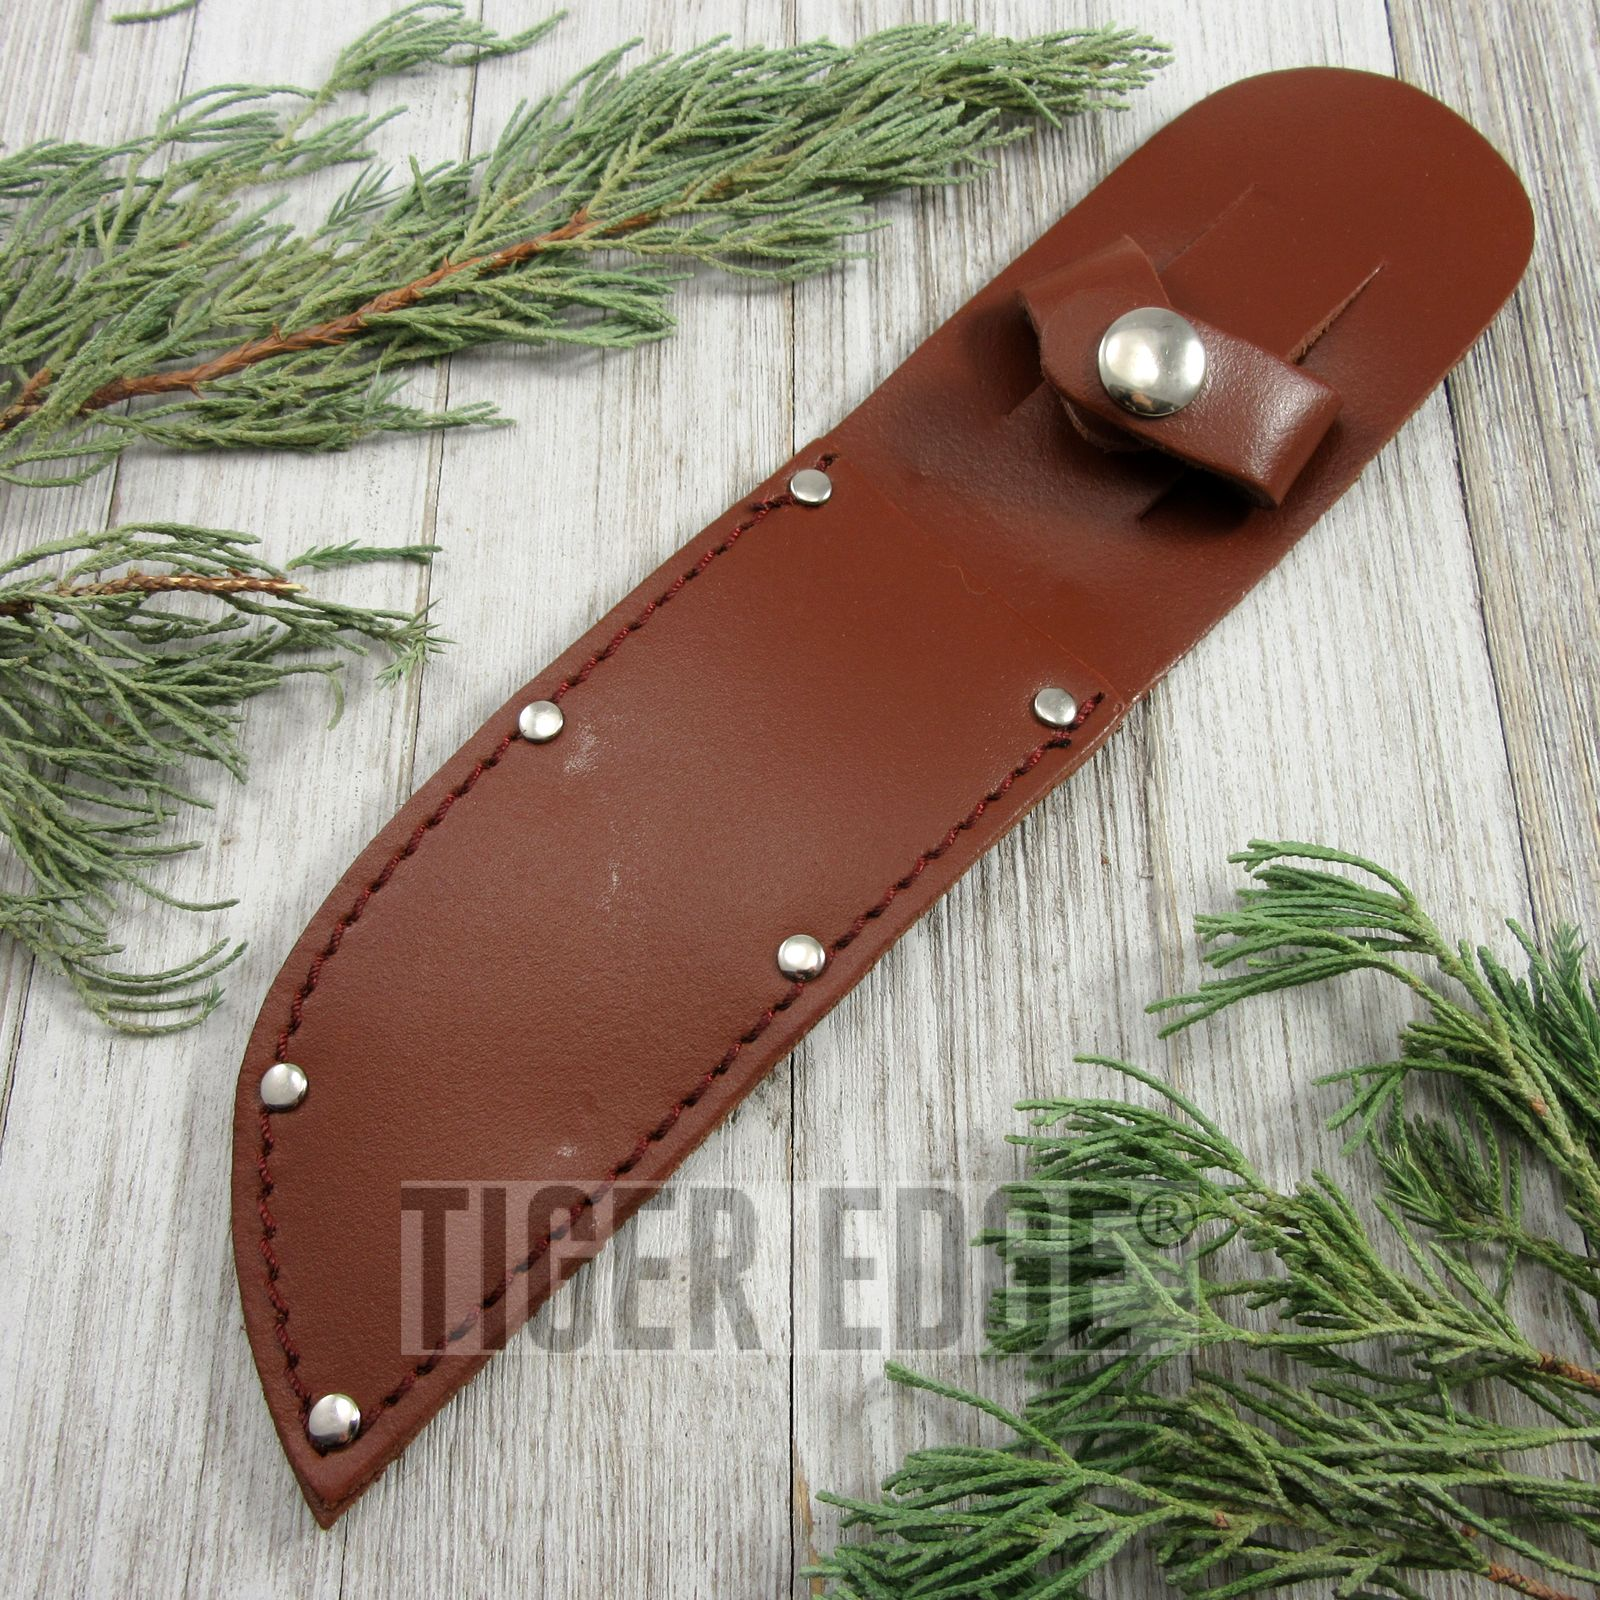 Fixed-Blade Knife Sheath | Brown Leather Belt Pouch - For Blades Up To 5